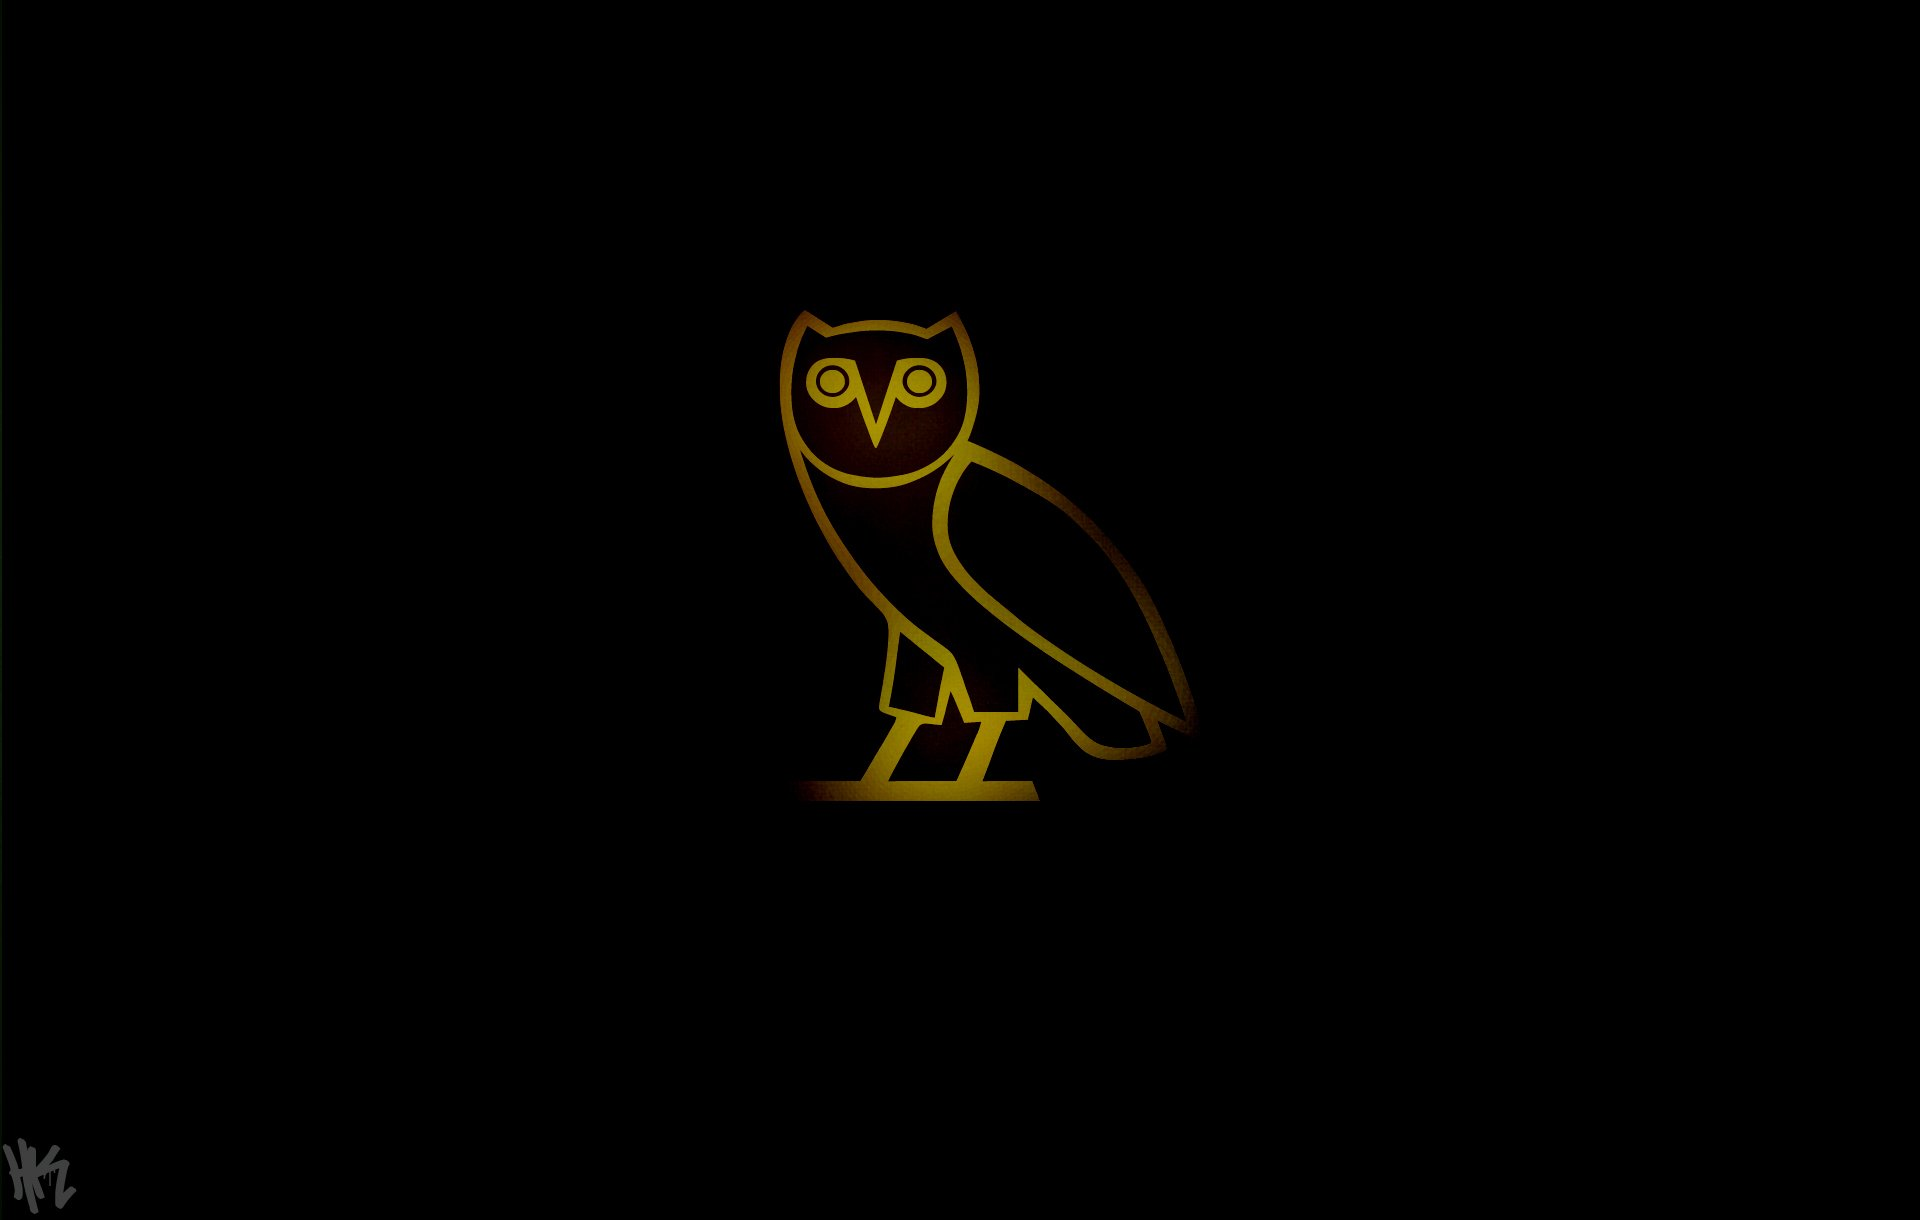 drake ovo owl iphone wallpaper